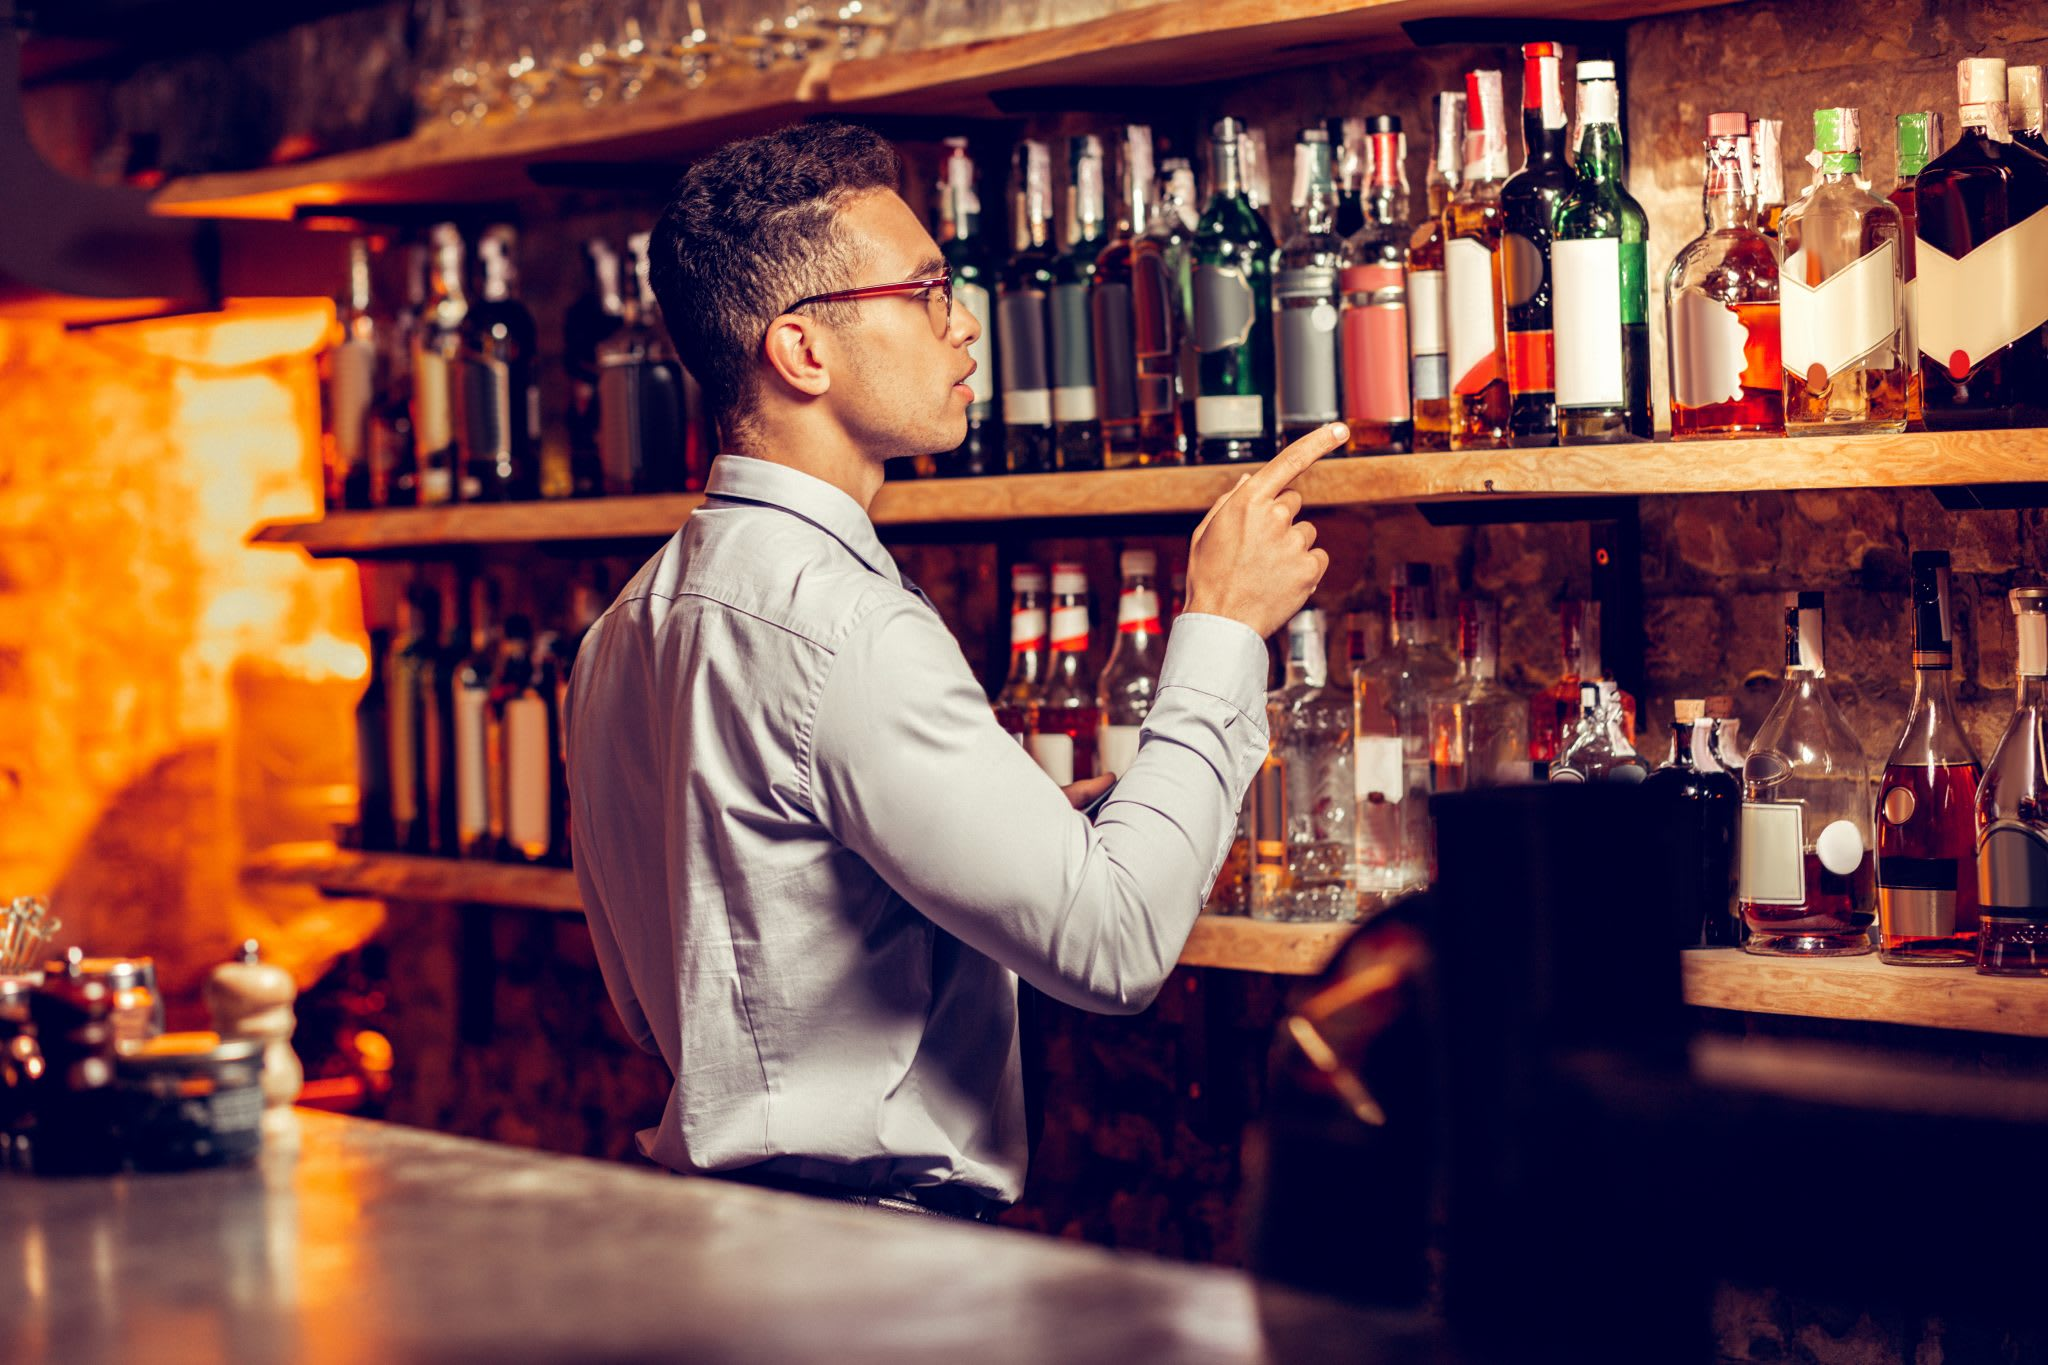 The Beginner's Guide to Using a Bar Inventory App